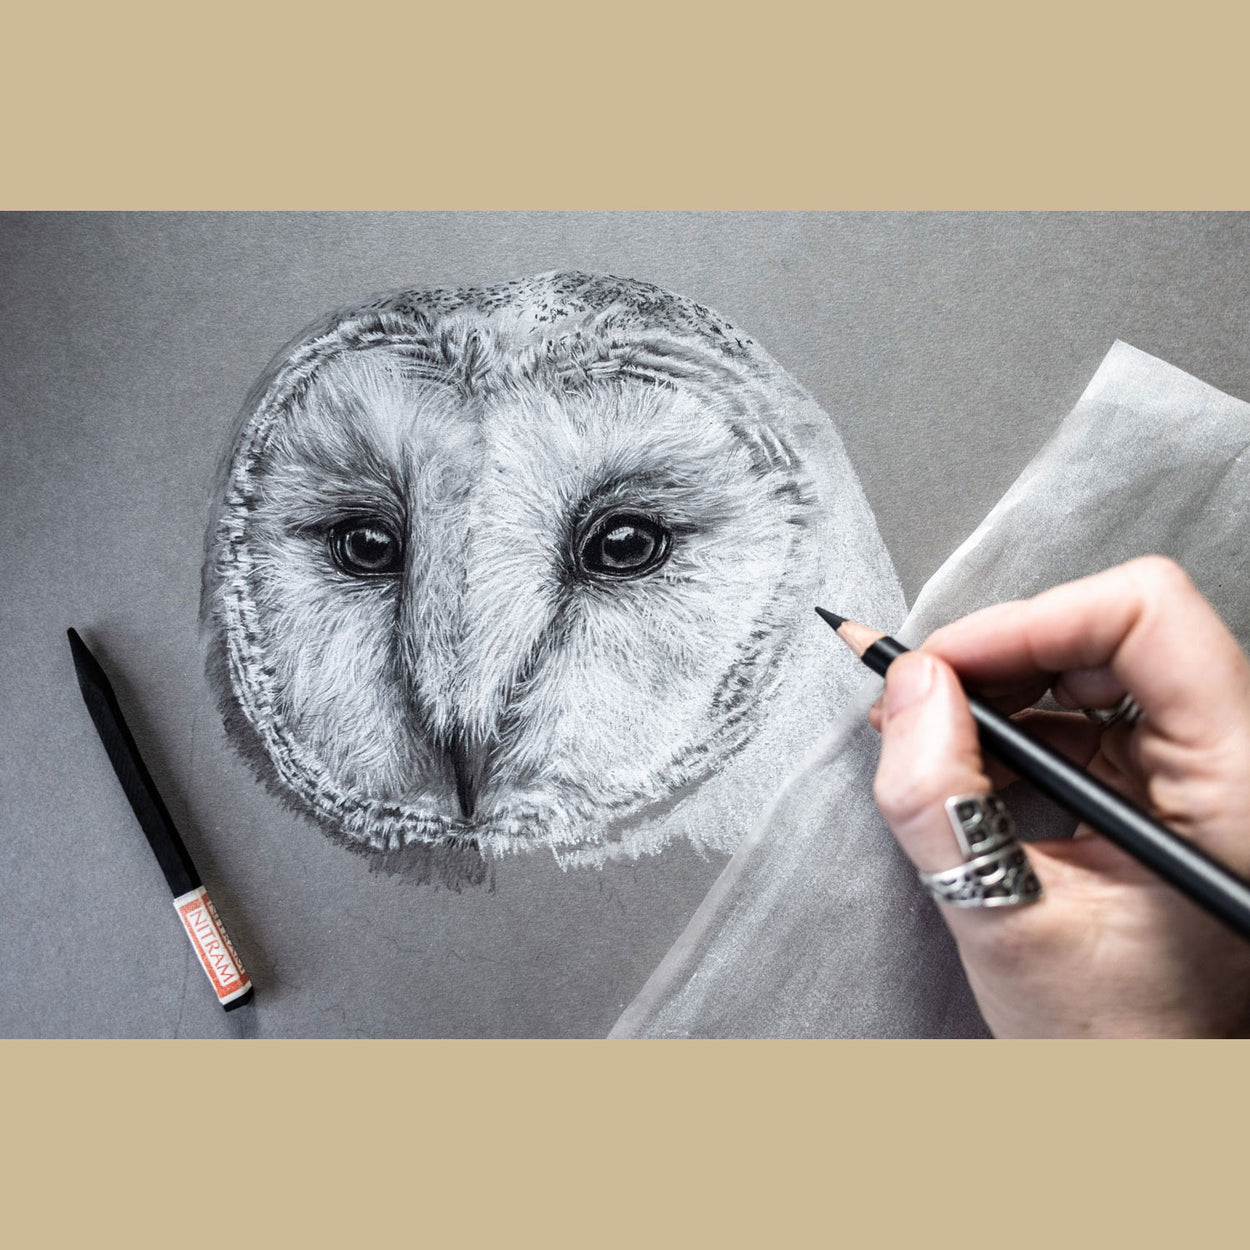 Barn Owl Charcoal Drawing in Progress - The Thriving Wild